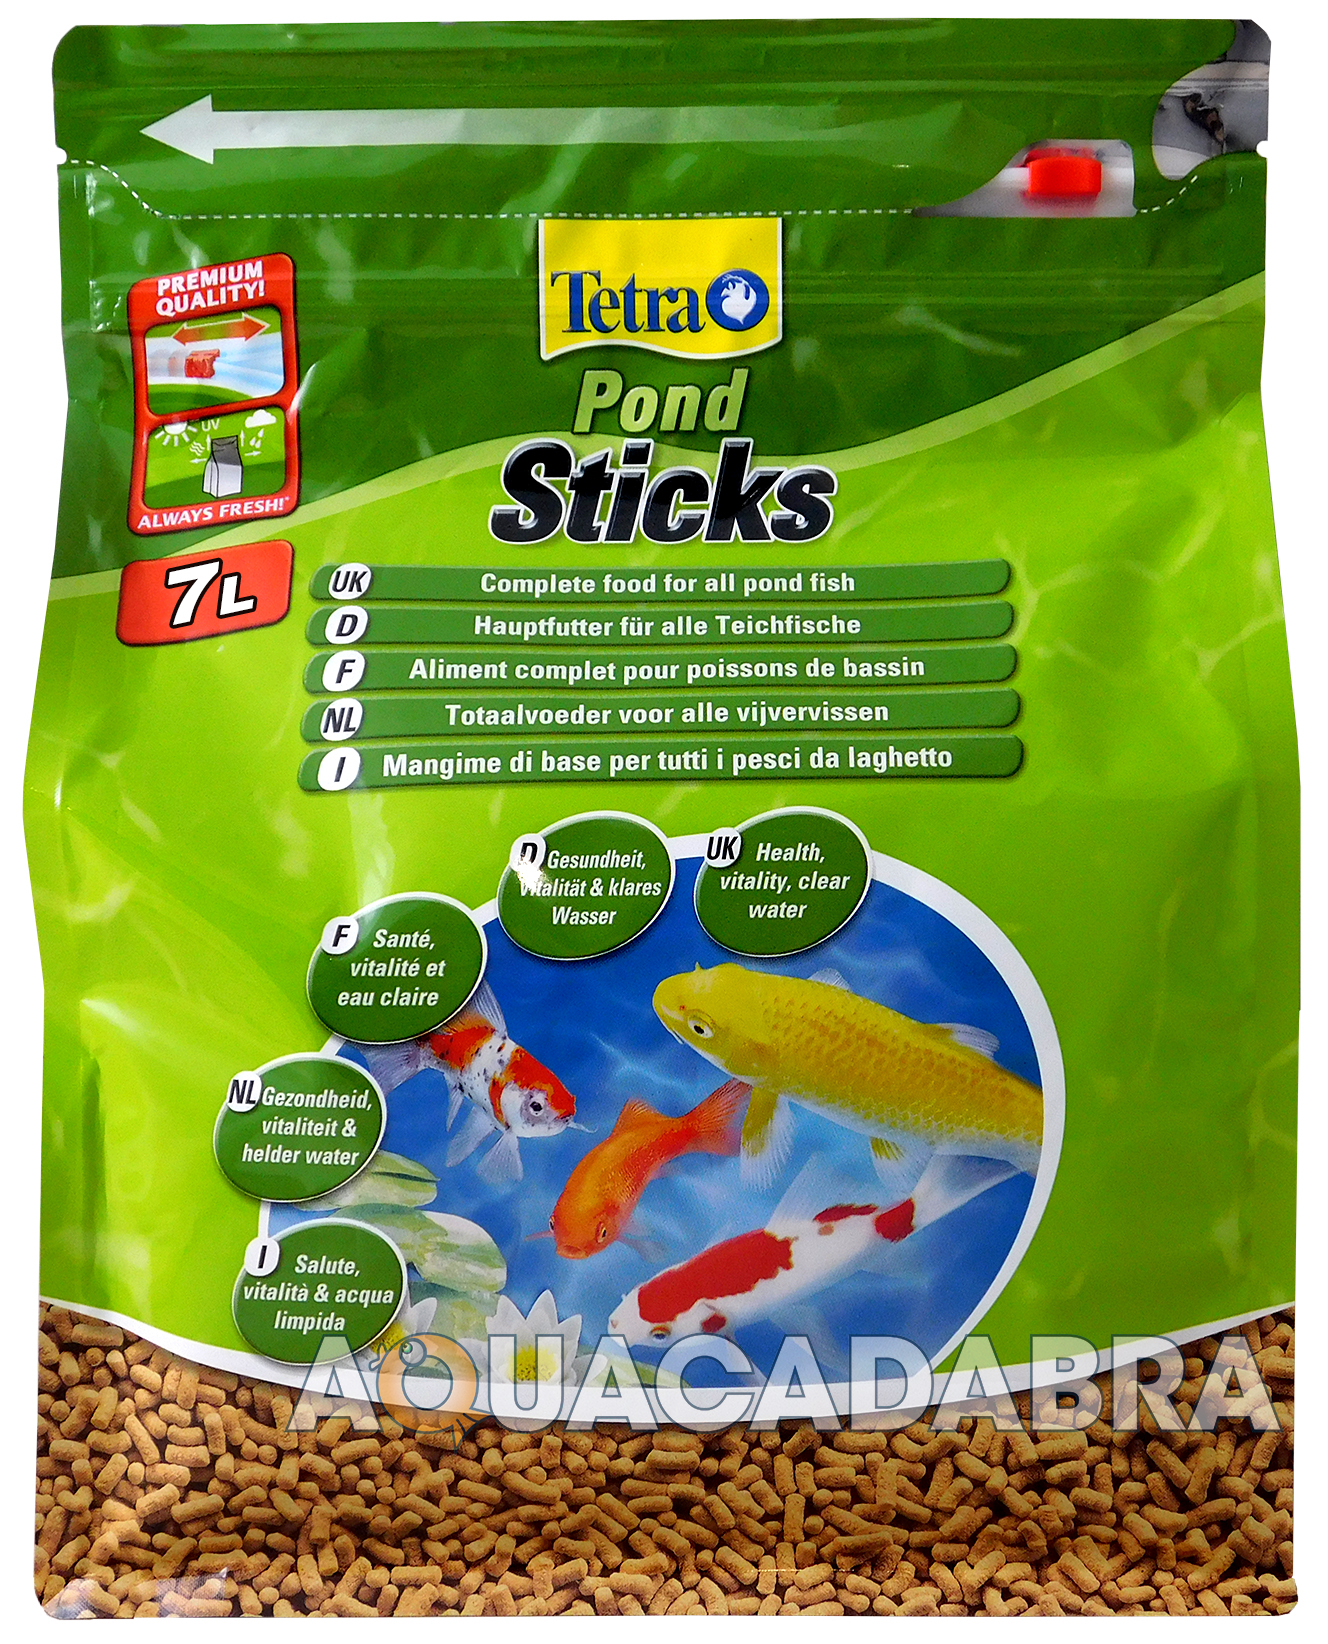 Tetrapond Tetra Pond Floating Food Sticks 780g 7l Fish